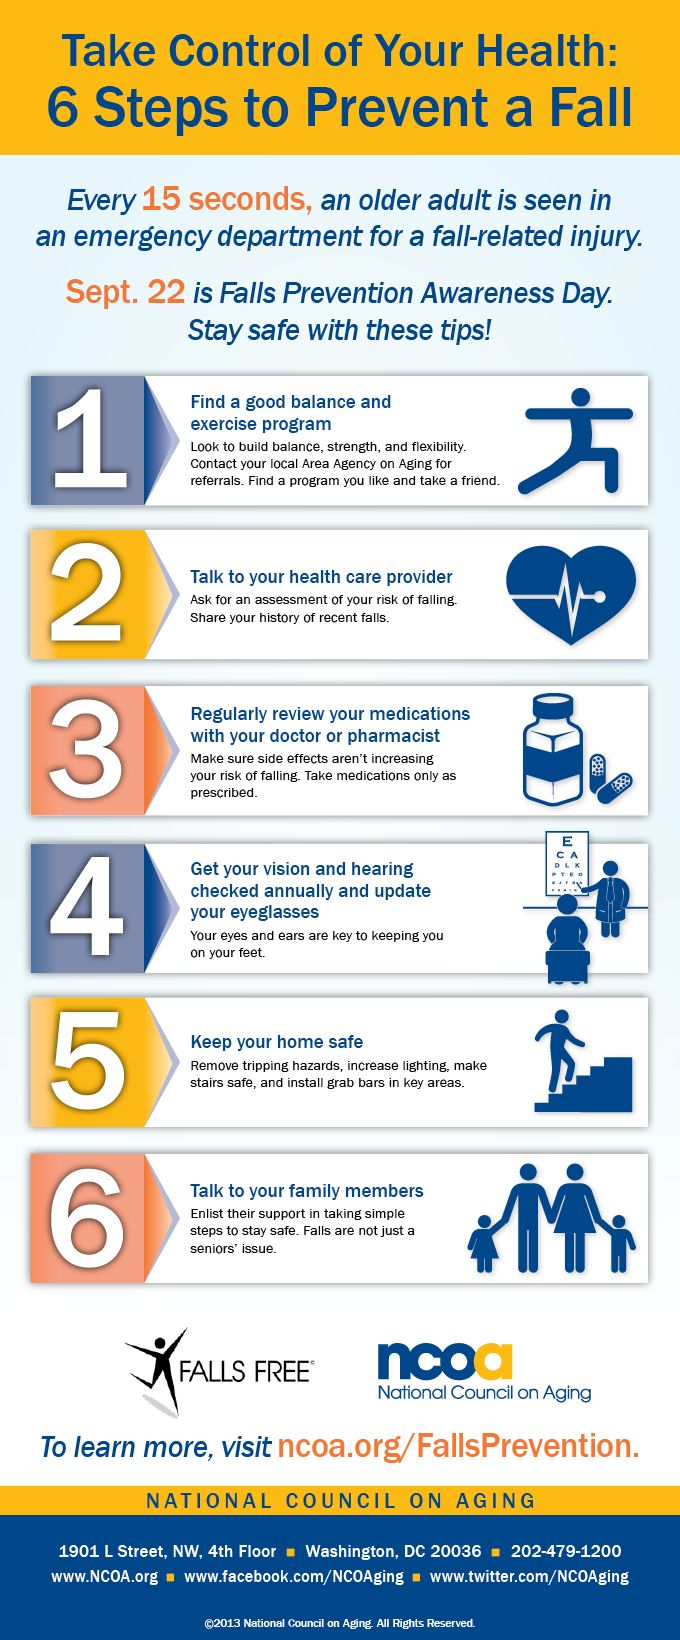 Take Control of Your Health: 6 Steps to Prevent a Fall ...